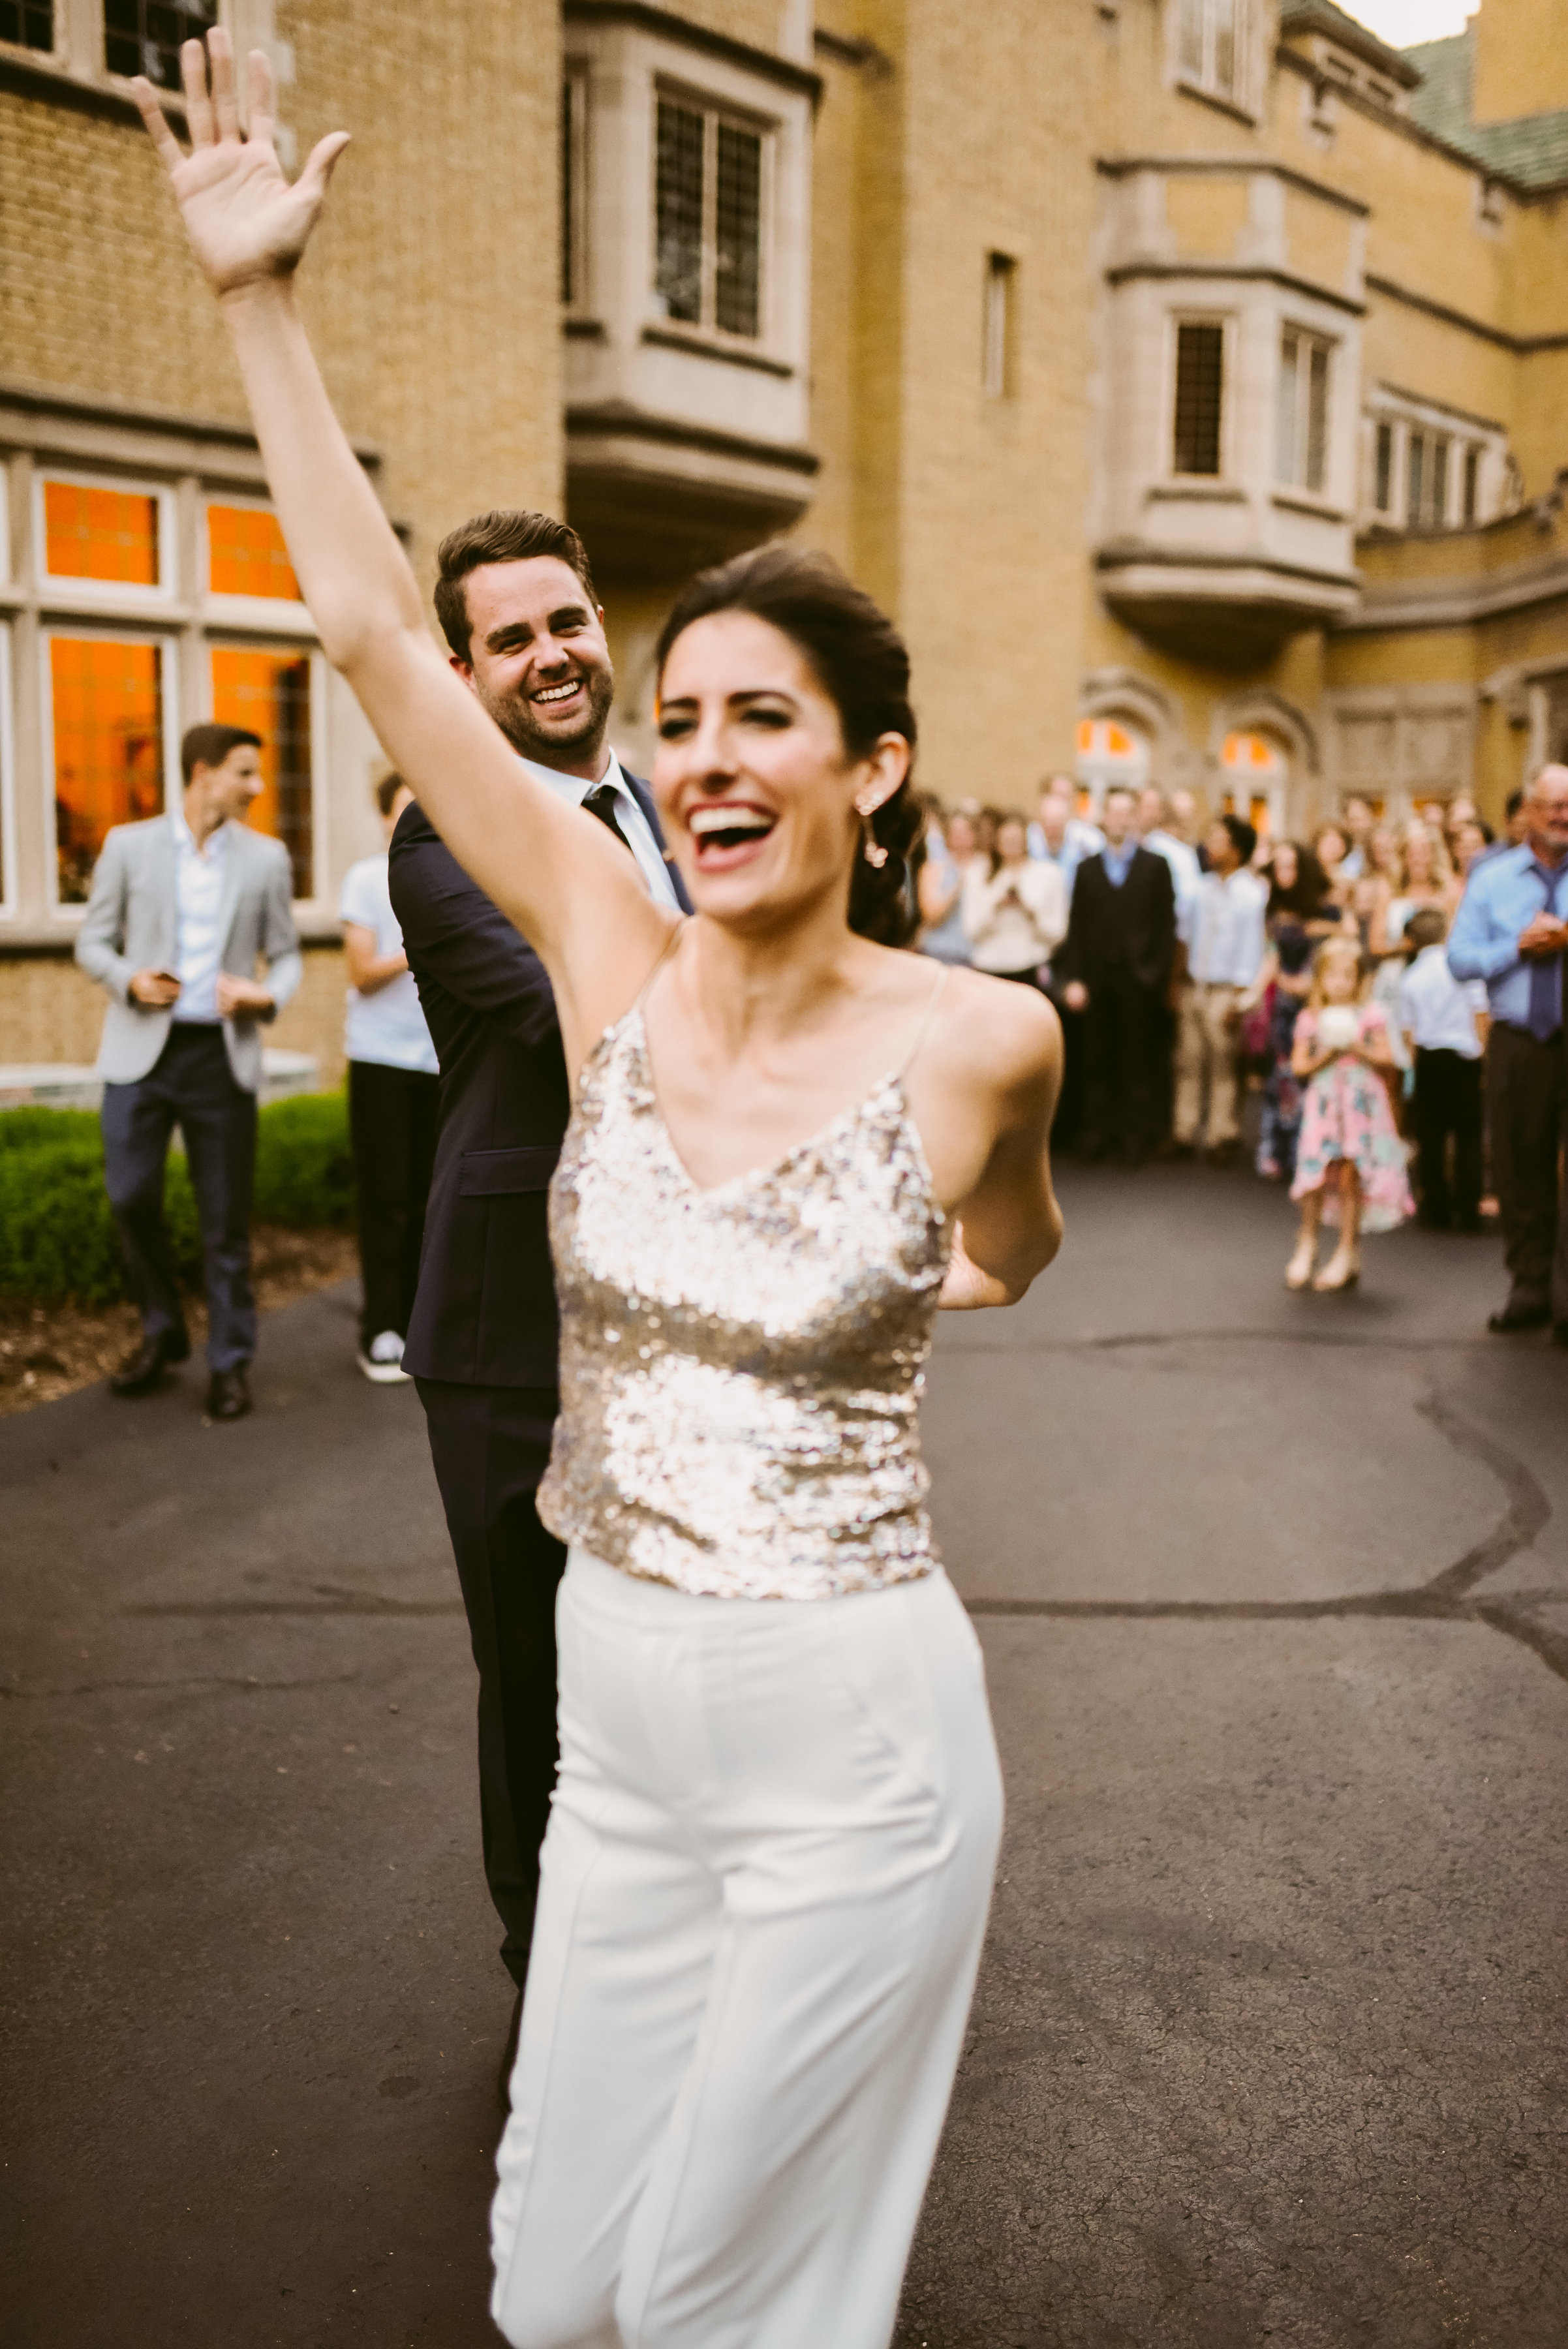 Kate and Zane, Indianapolis, 2018. Planner: Oh-so-talented planner Emily Ventura https://www.emilyventuradesigns.com/ Photo by Doodle Shots Photography